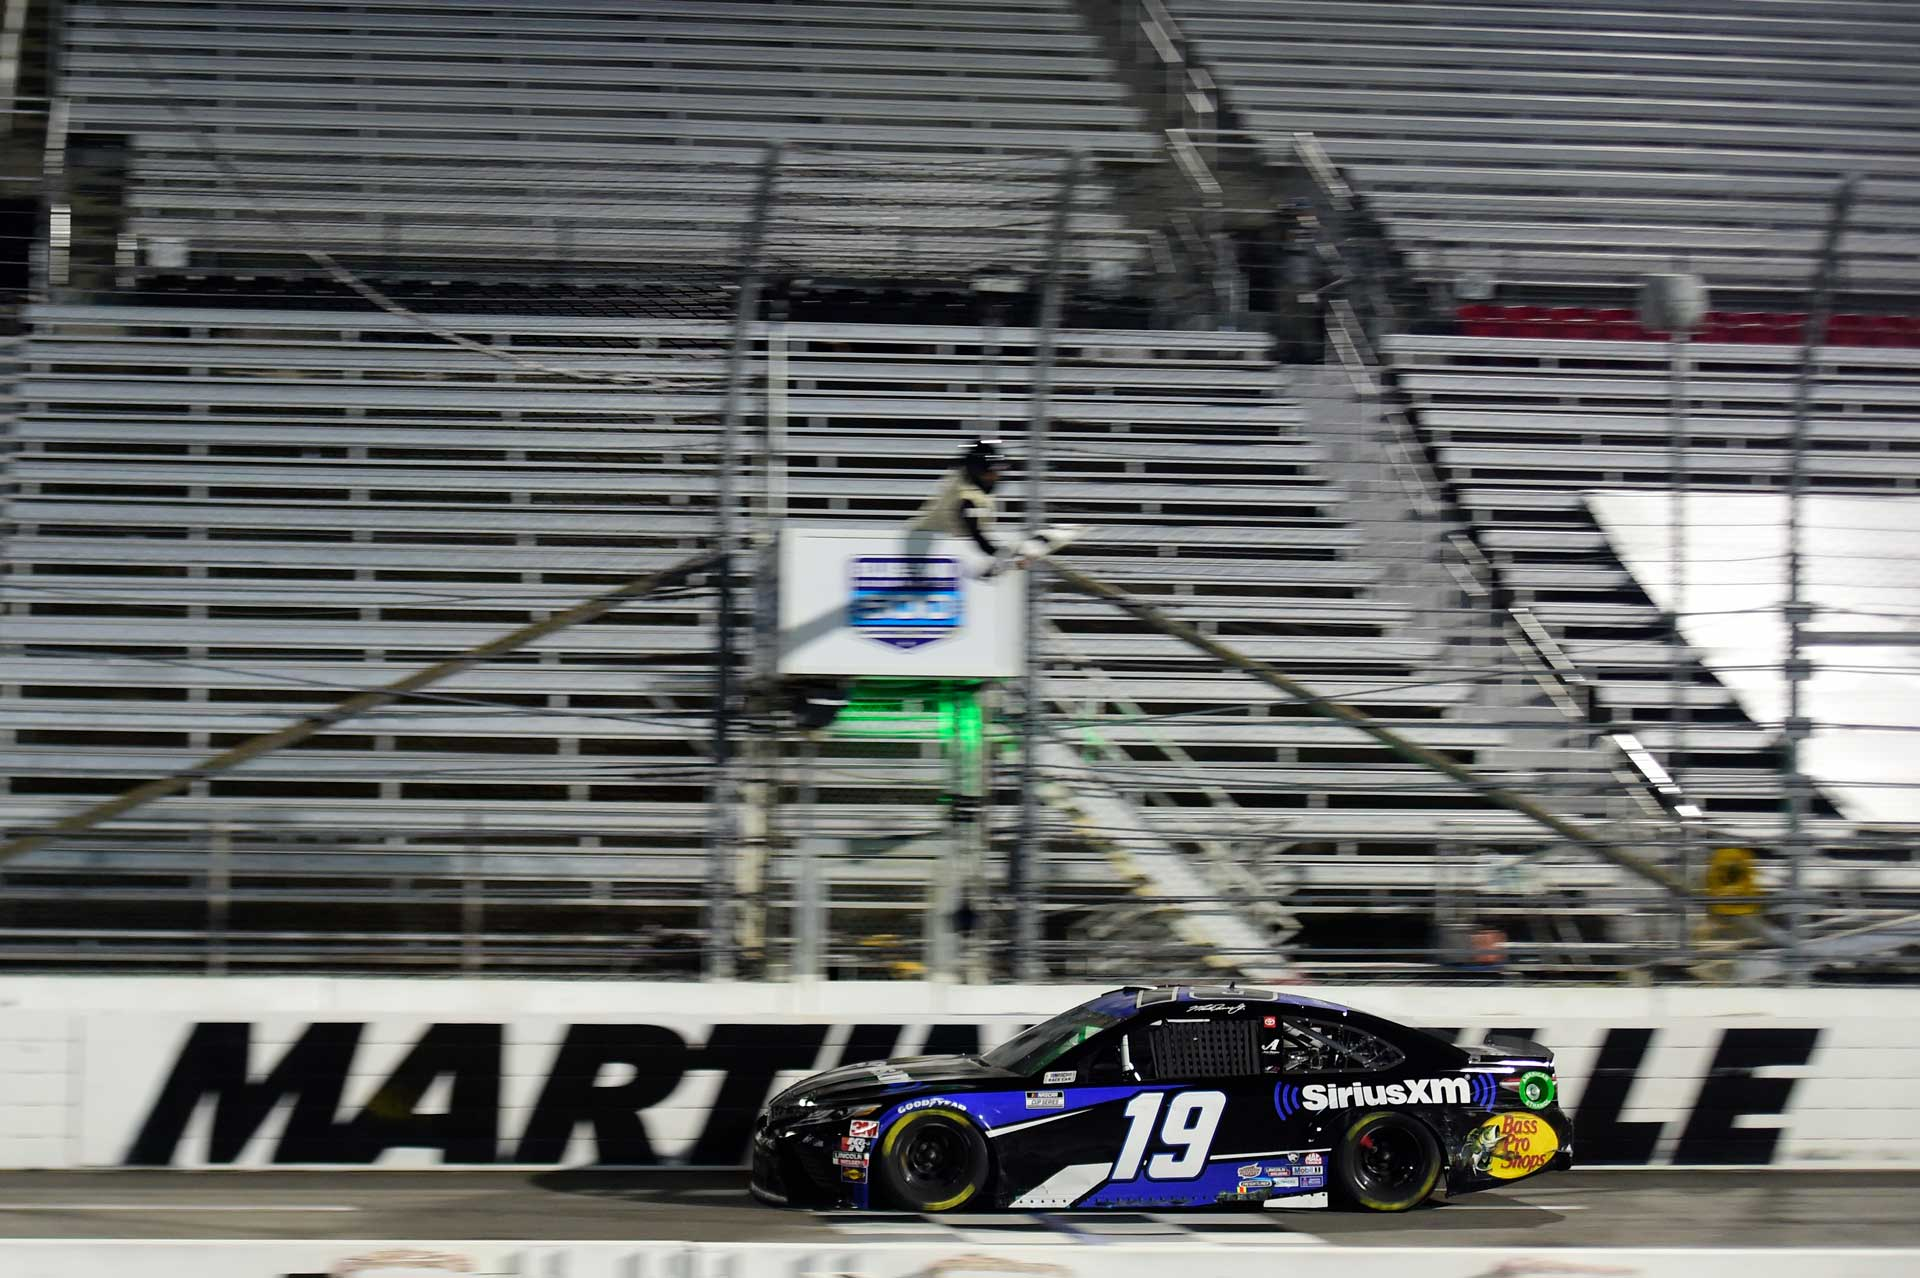 Martin Truex Jr. Surges to Win Blue-Emu 500 in Martinsville